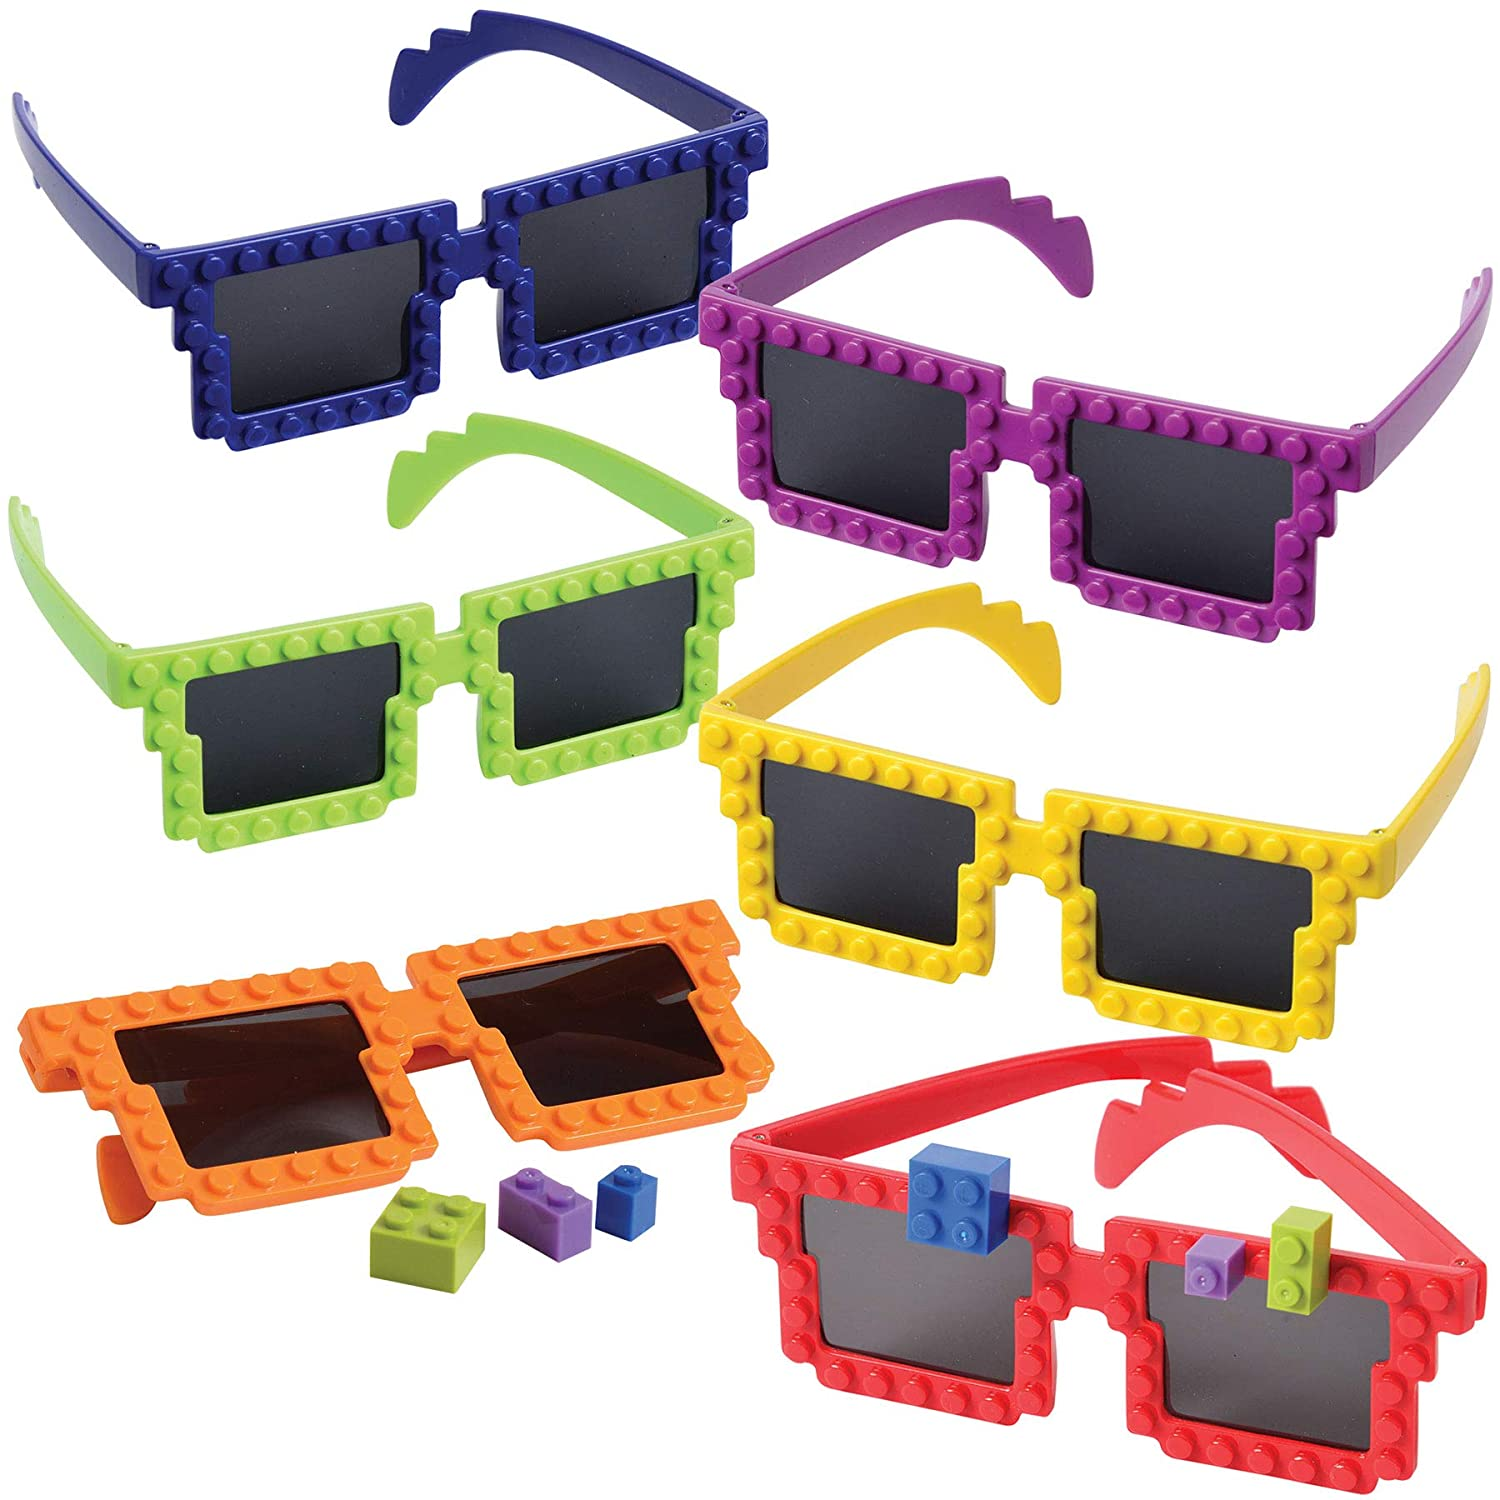 Building Blocks Glasses - Pack of 6 - Block Mania Building Block Glasses with Extra Bricks for Carnival Supplies, and Birthday Party Favors for Kids ...